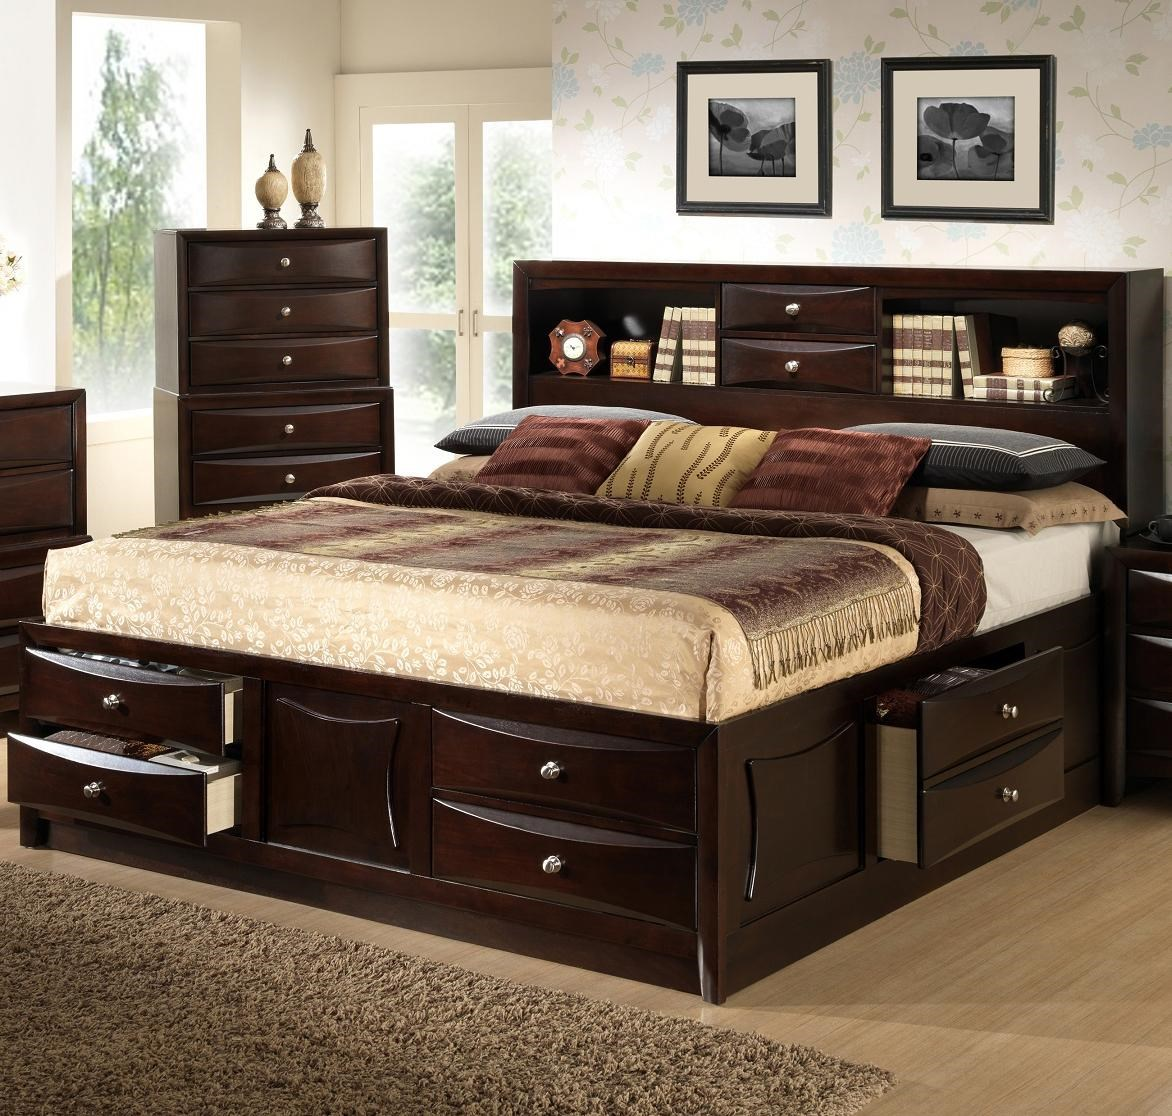 Bookcase headboard queen storage bed house plans below Under bed book storage